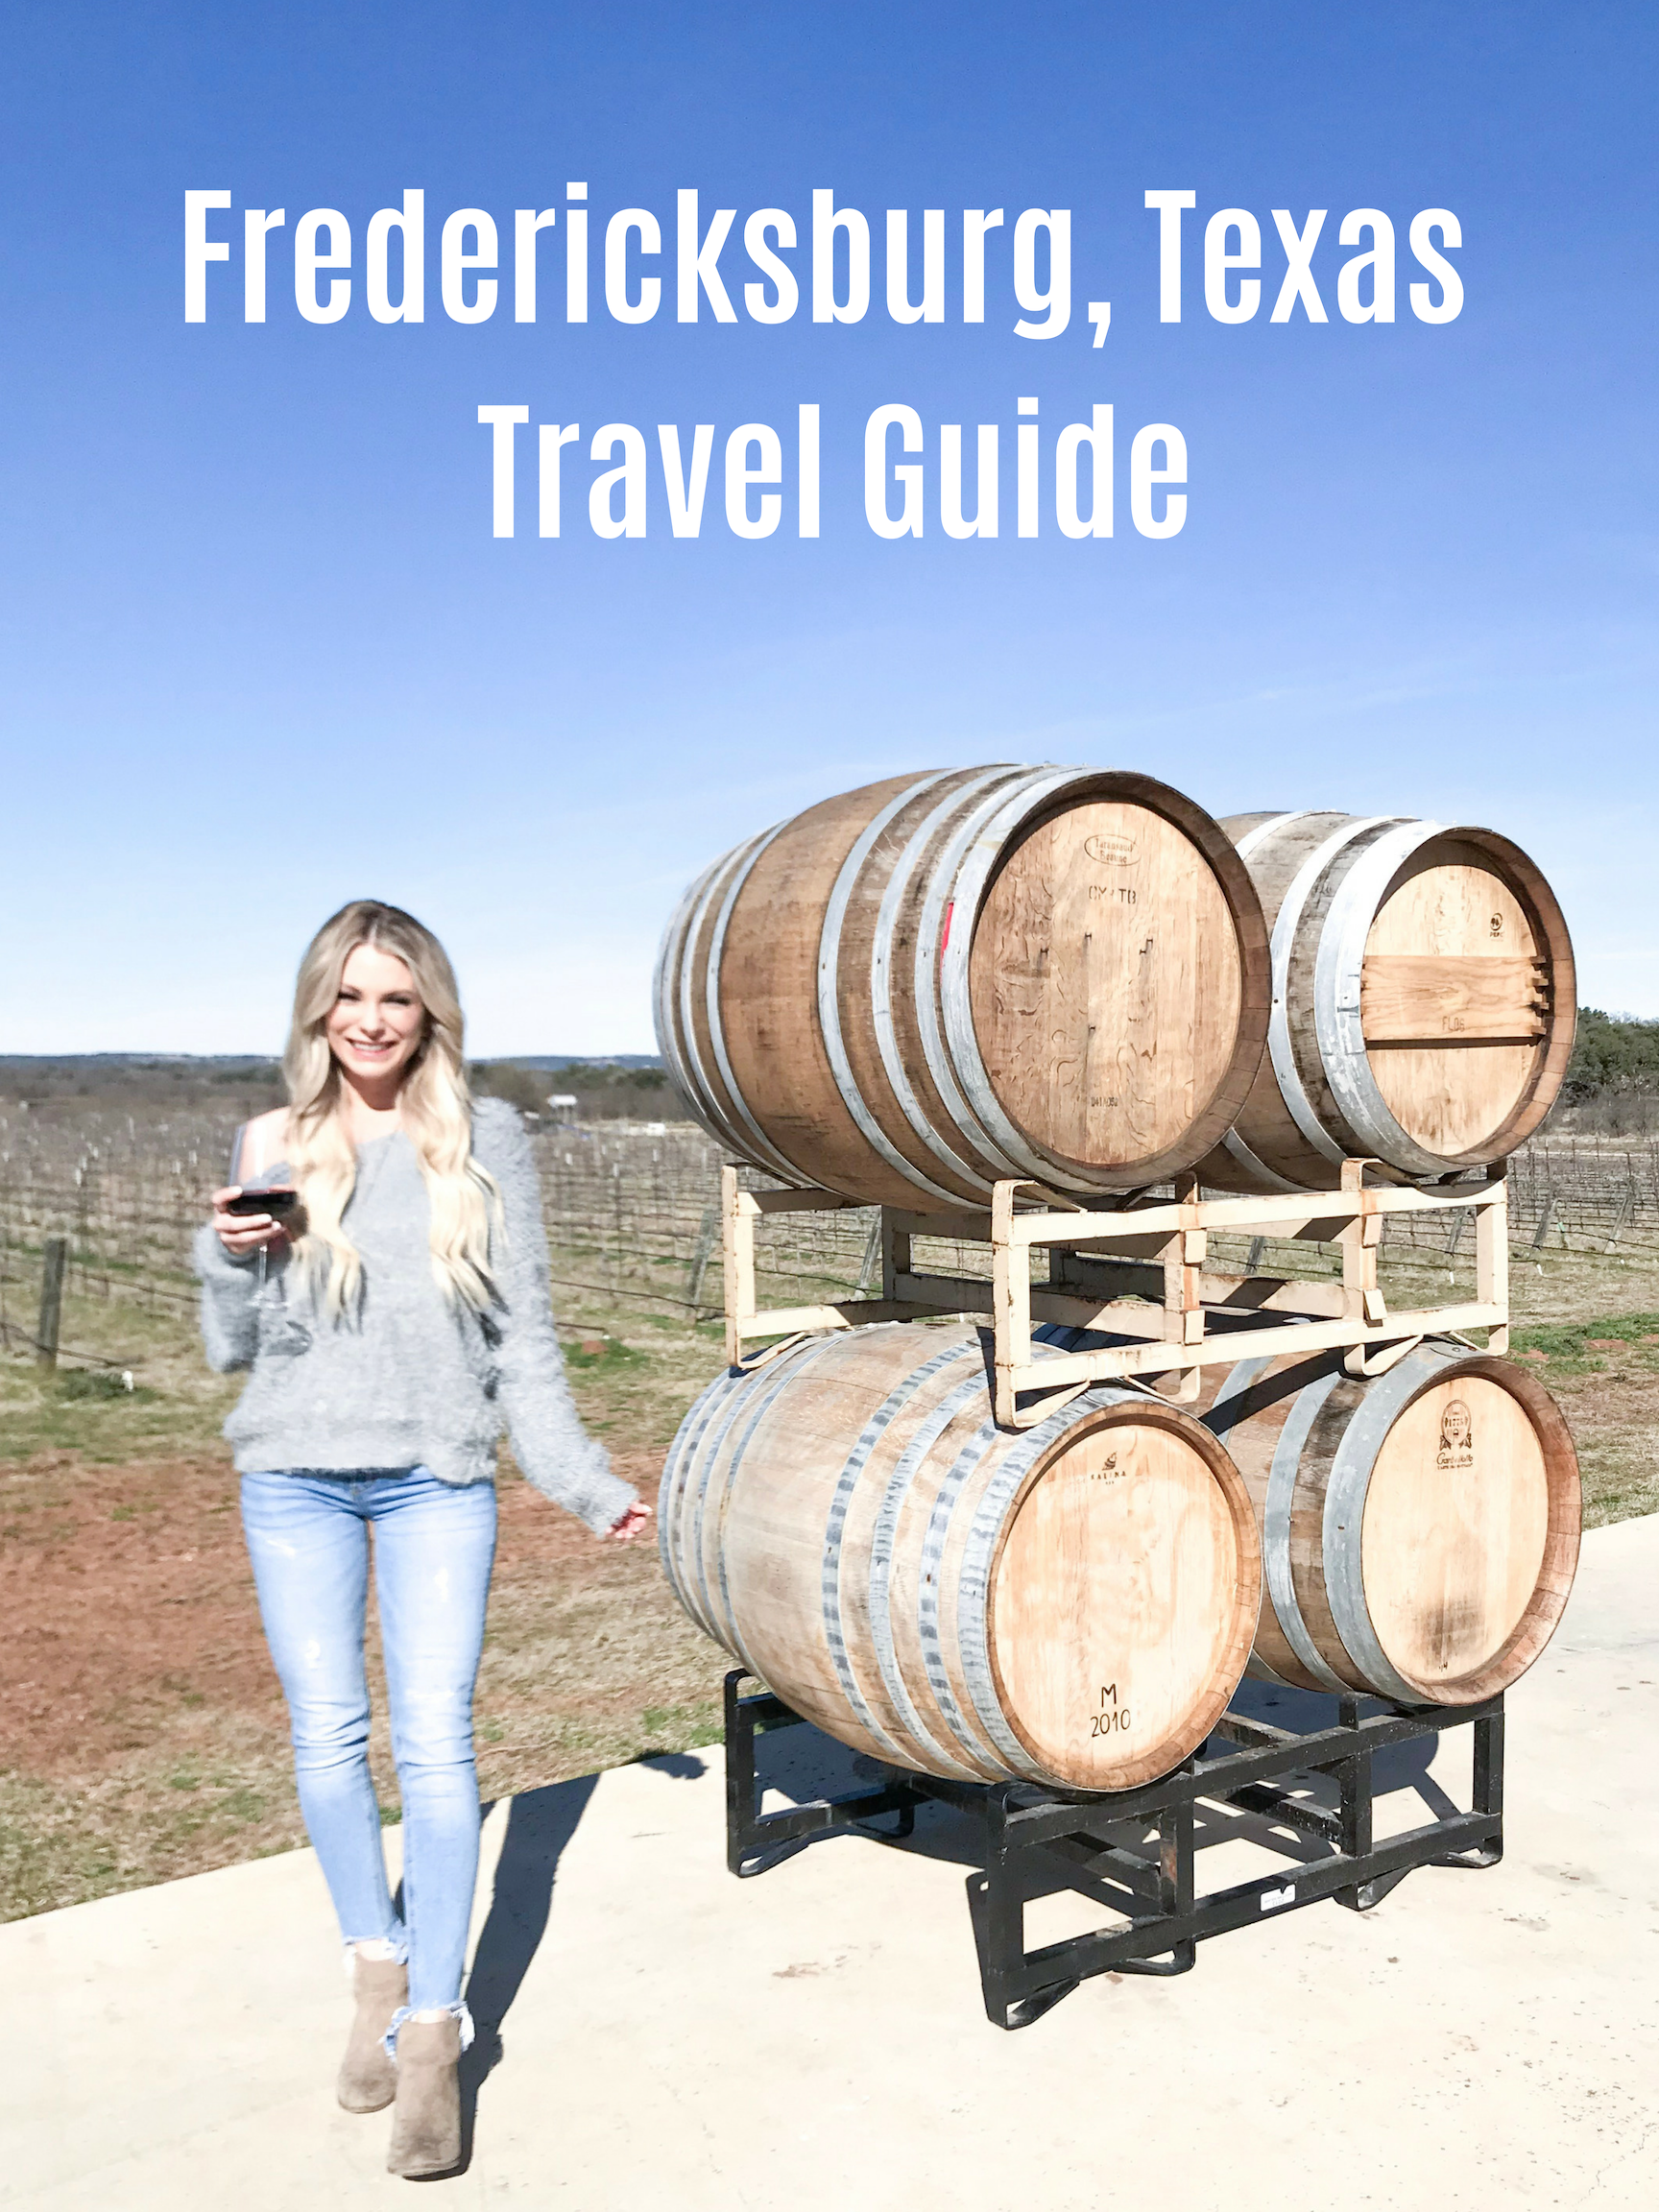 Fredericksburg Texas Travel Guide - Hey y'all! We just got back from another fun weekend in Fredericksburg! I love going to Fredericksburg for a quick weekend getaway from Austin because it is always so relaxing and easy to get to! If you haven't been to Fredericksburg in a while it is really growing like crazy! There are so many wineries, cute vacation rentals, and restaurants! I get so many questions about where we like to go, where we stay and what we do there! So I wanted to share our recommendations with you guys here!CLICK HERE TO READ MORE…